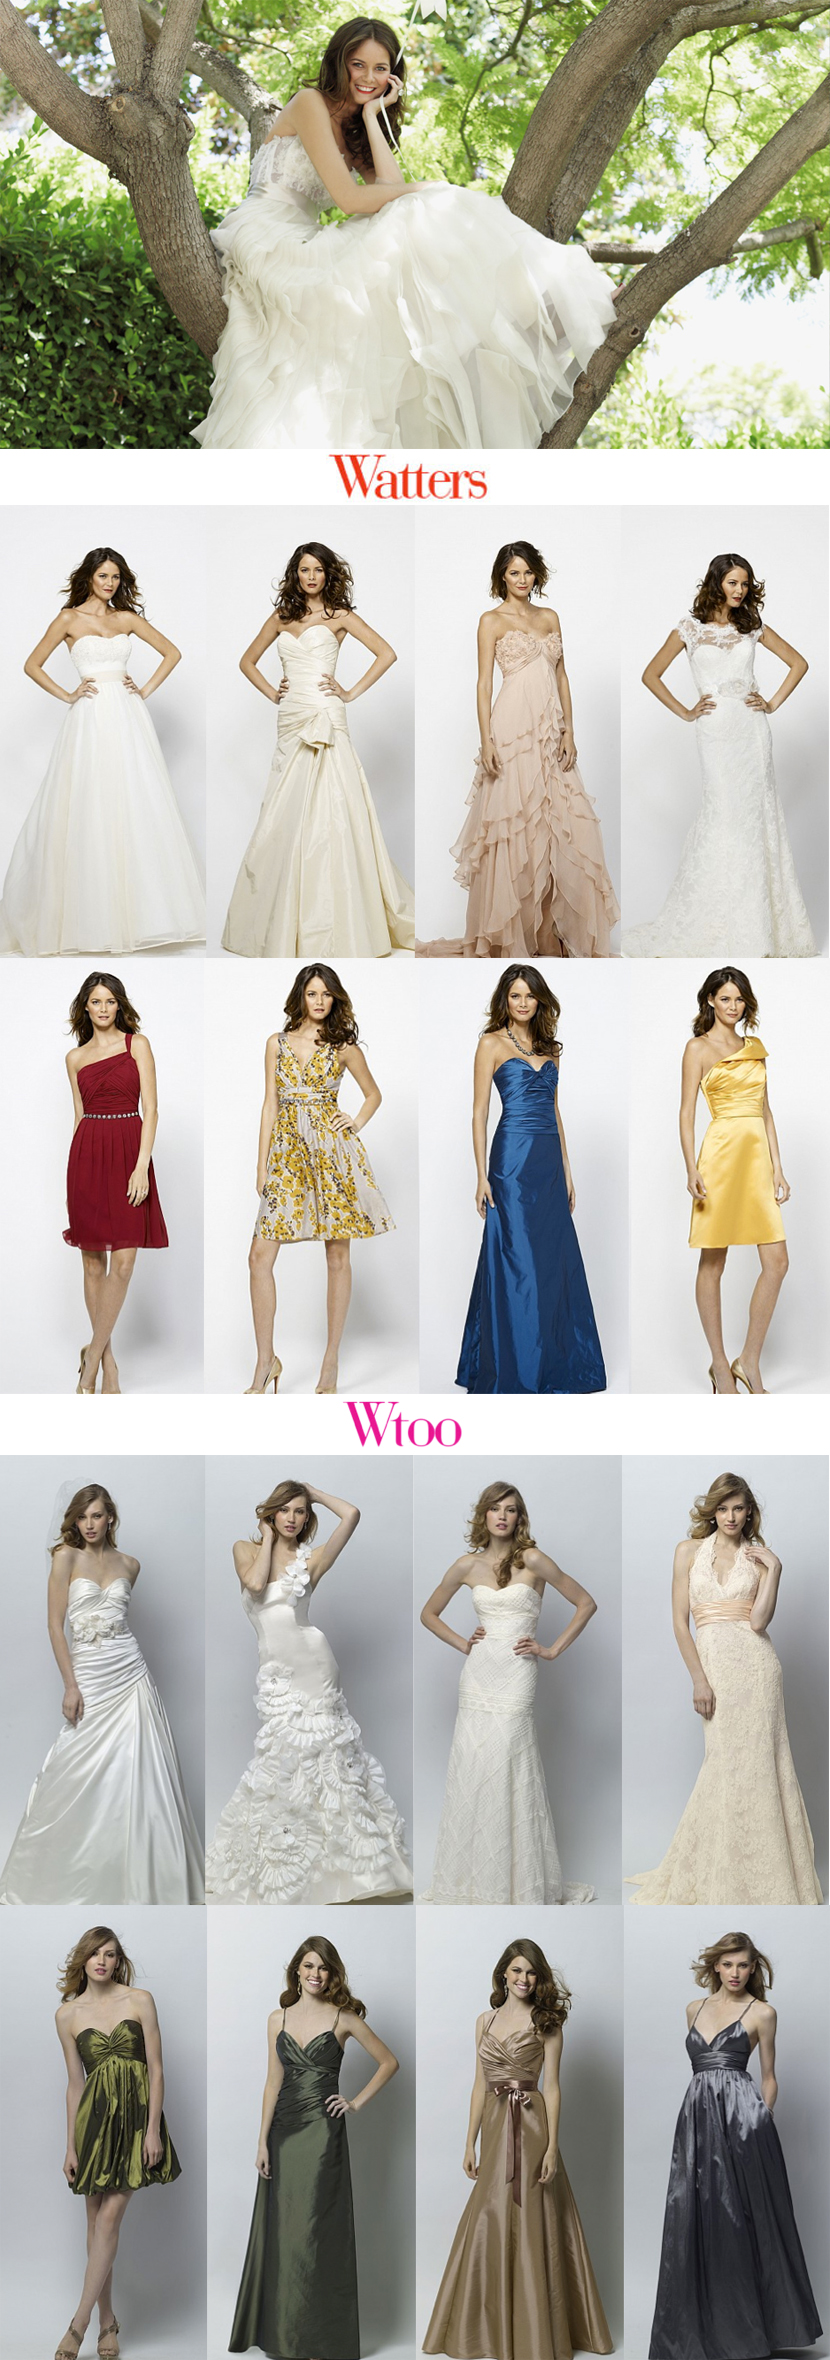 Texas wedding gowns by Watters and WTOO